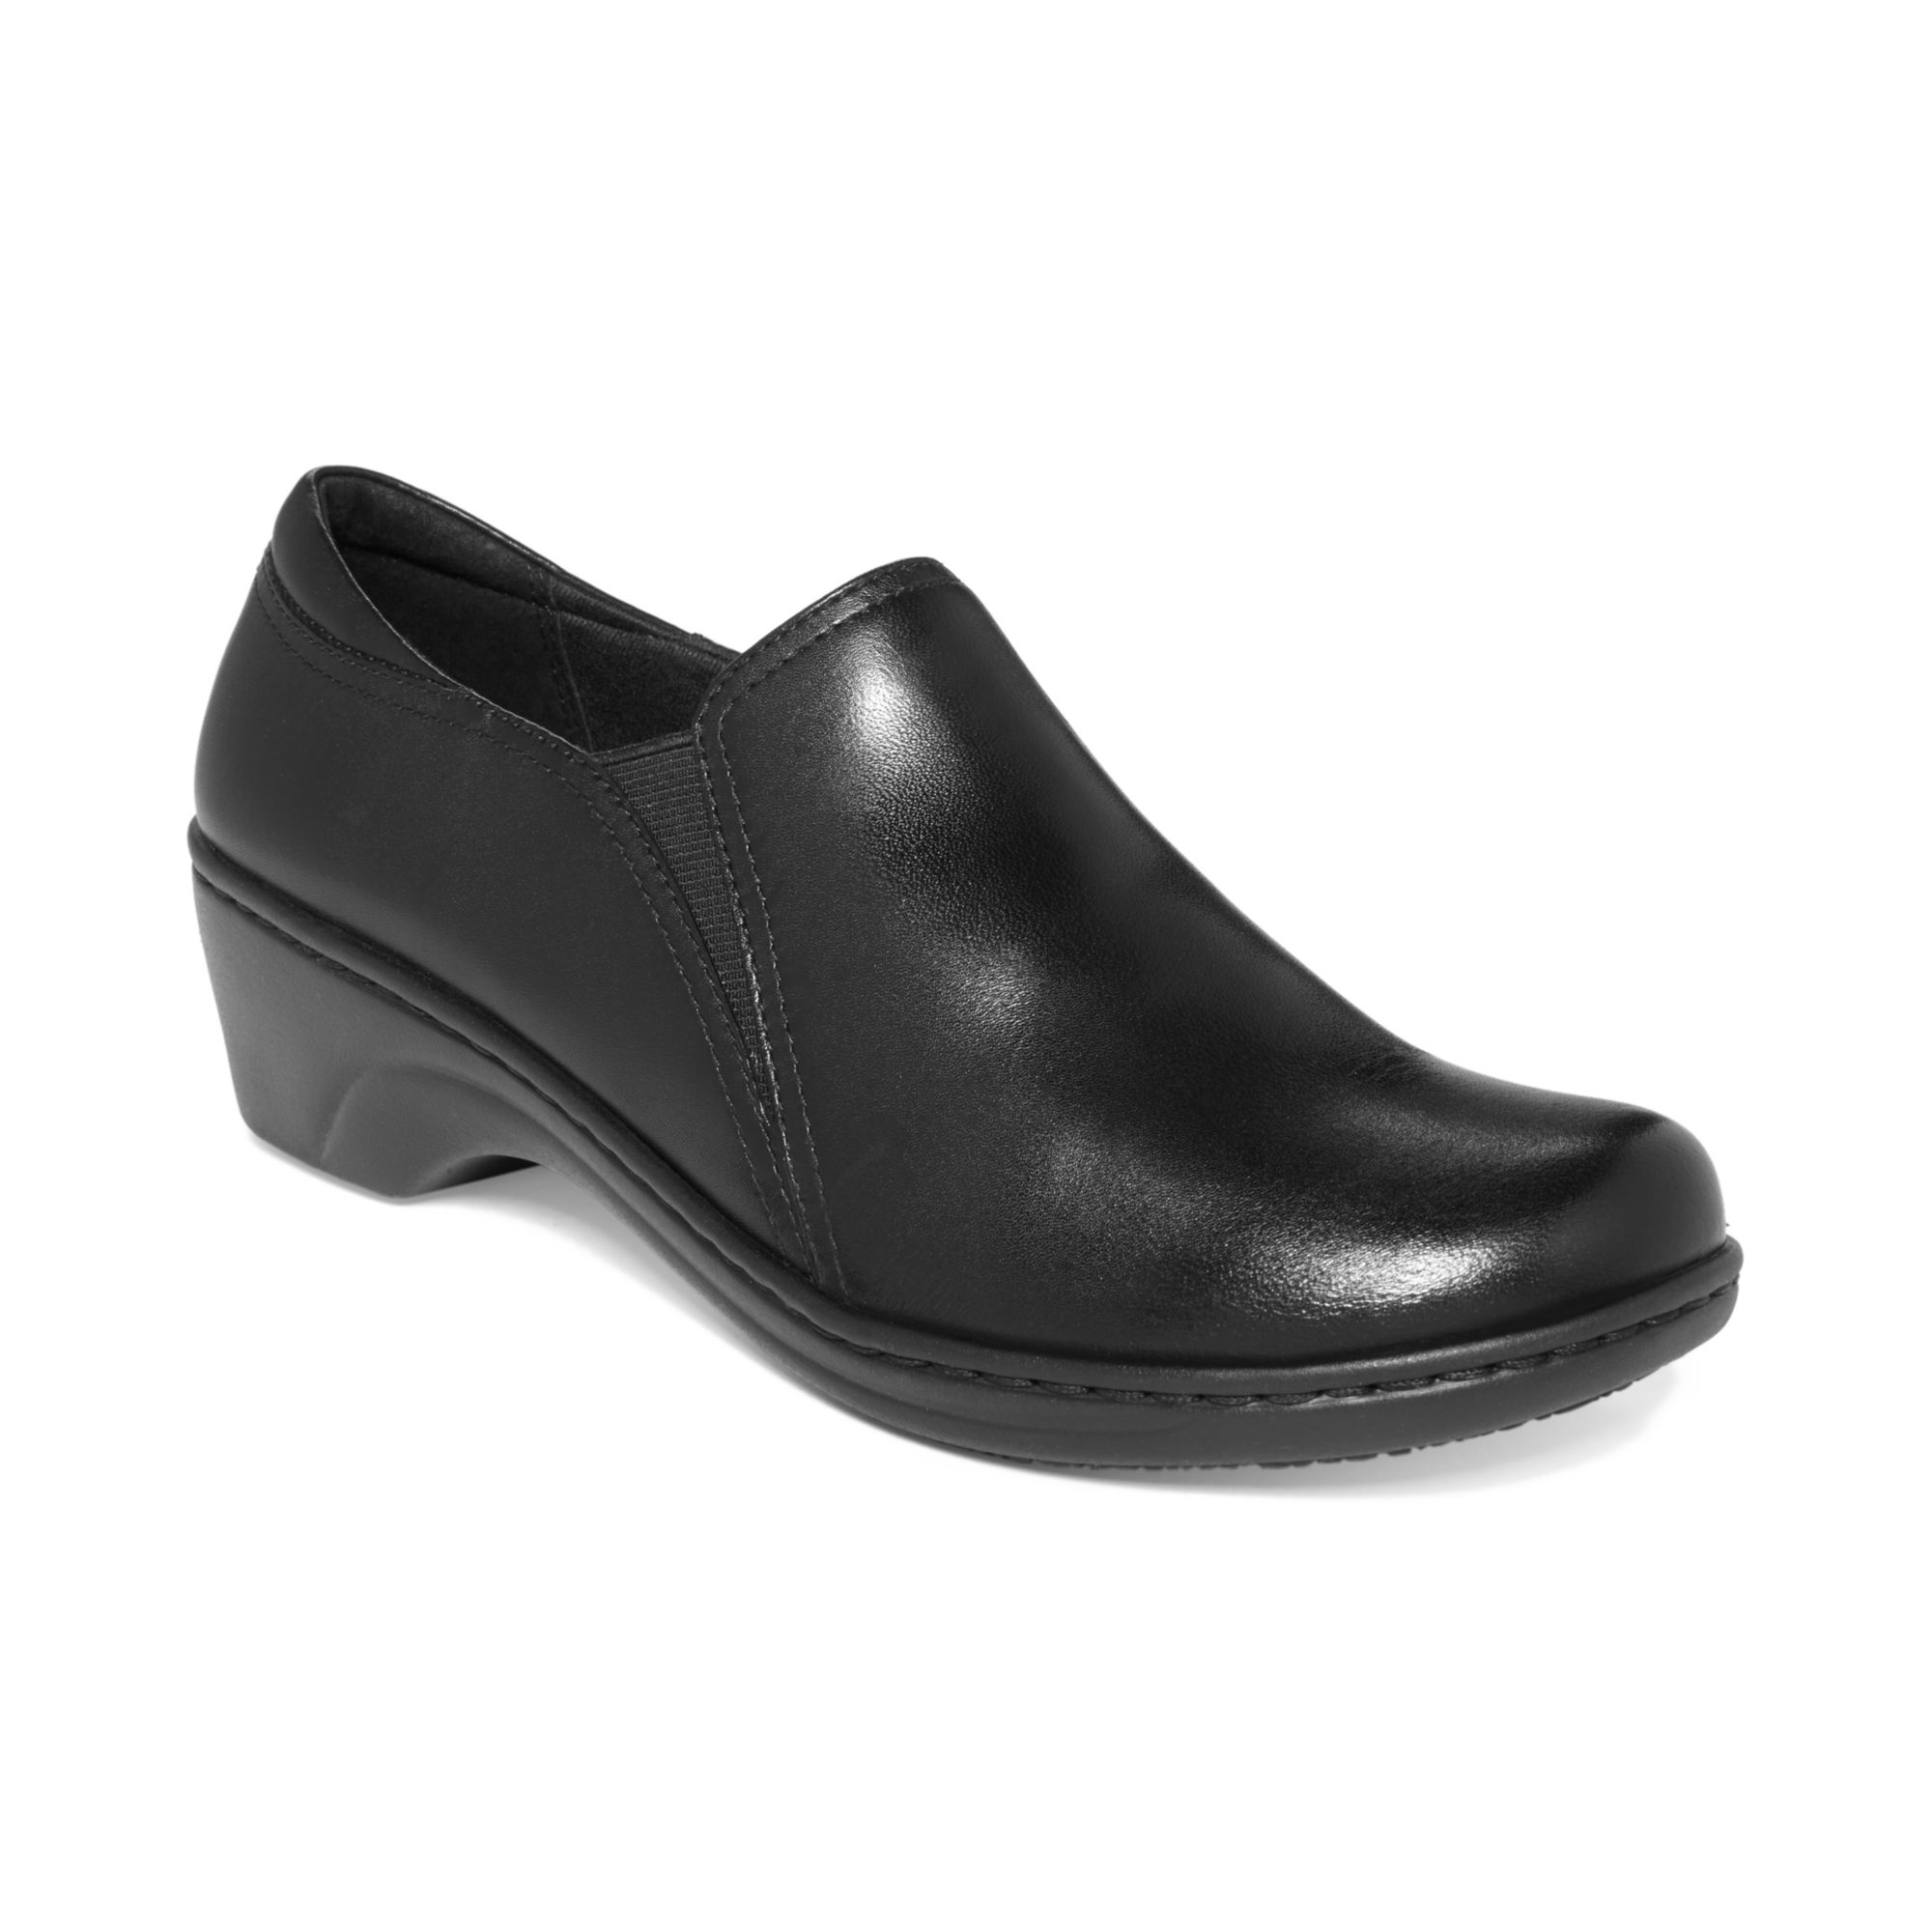 Clarks Clarks Womens Shoes Grasp Chime Non Slip Flats In